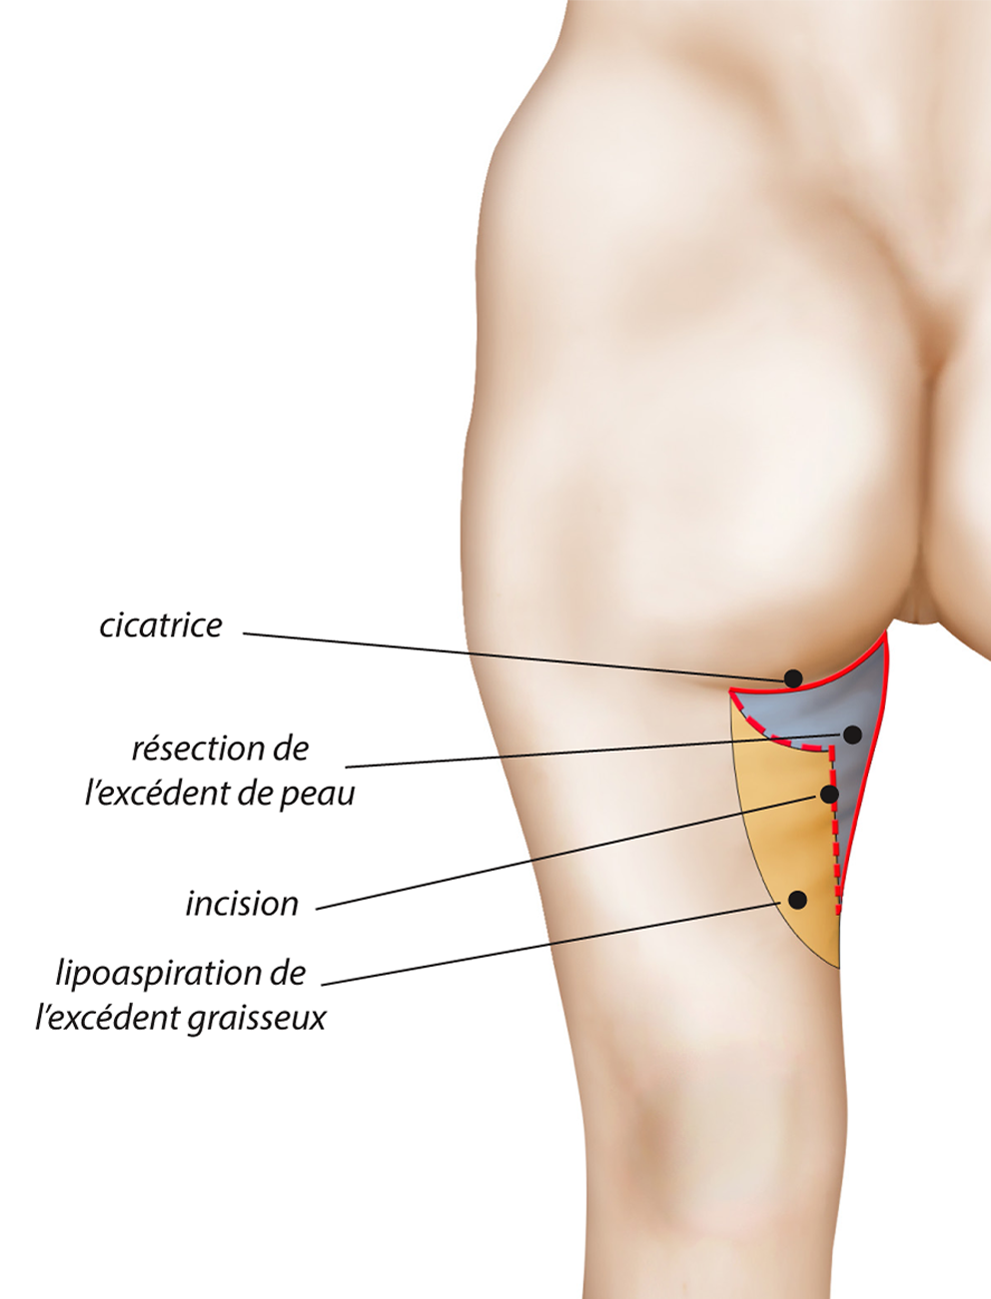 cicatrice-lifting-cuisse-2.png